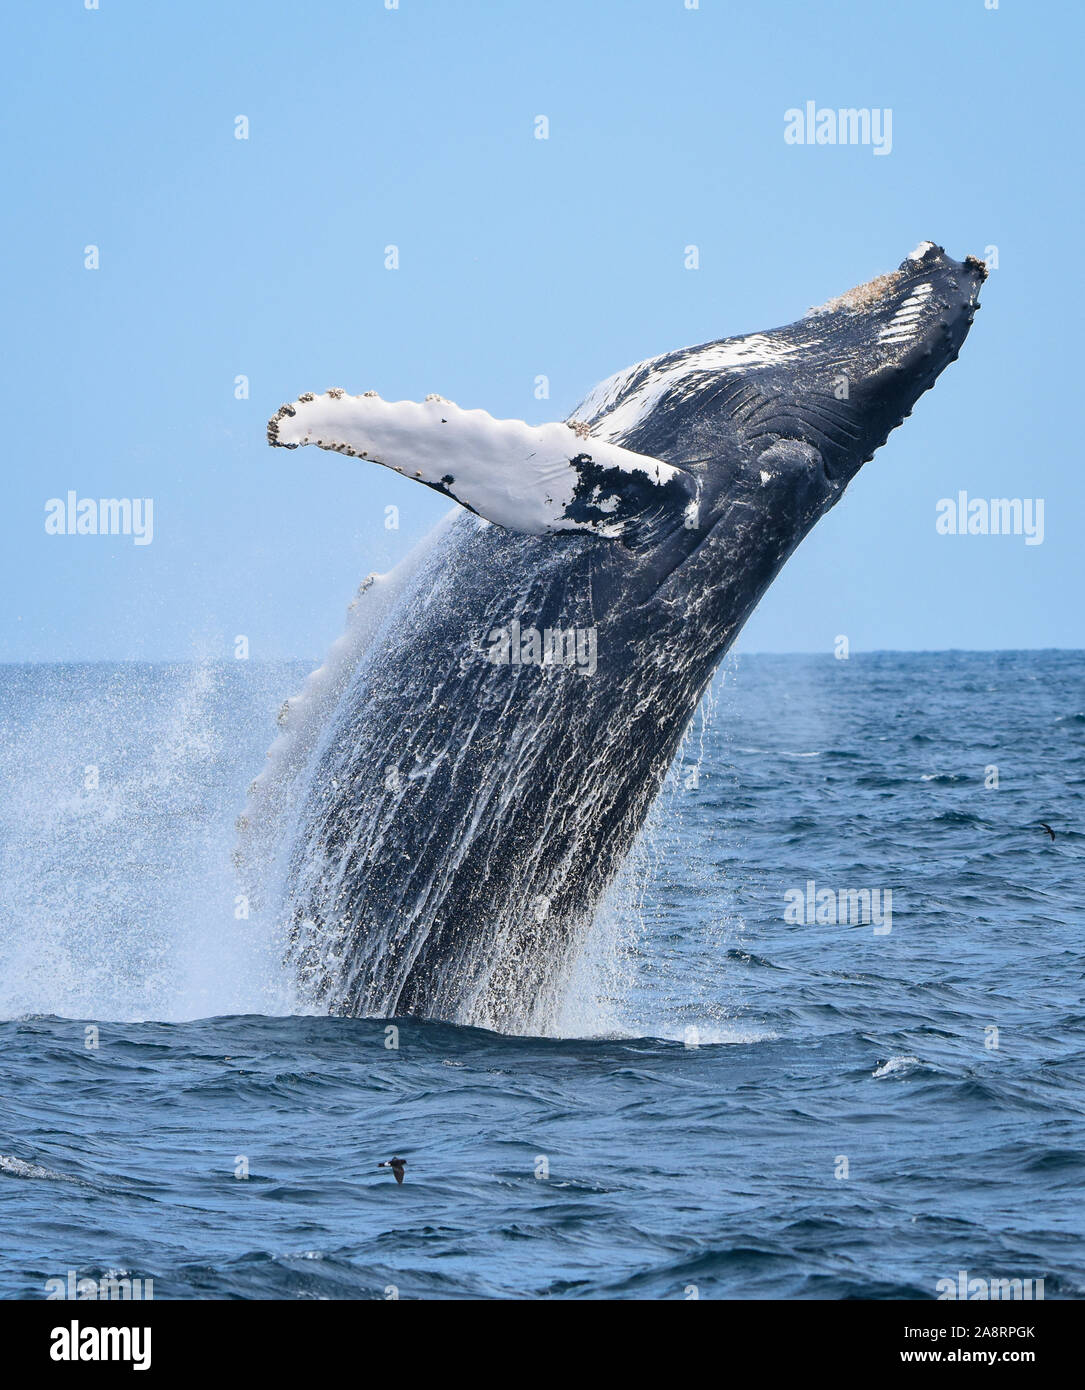 A breaching humpback whale leaps out of the ocean with a splash as water streaming off him falls back to the sea. Stock Photo